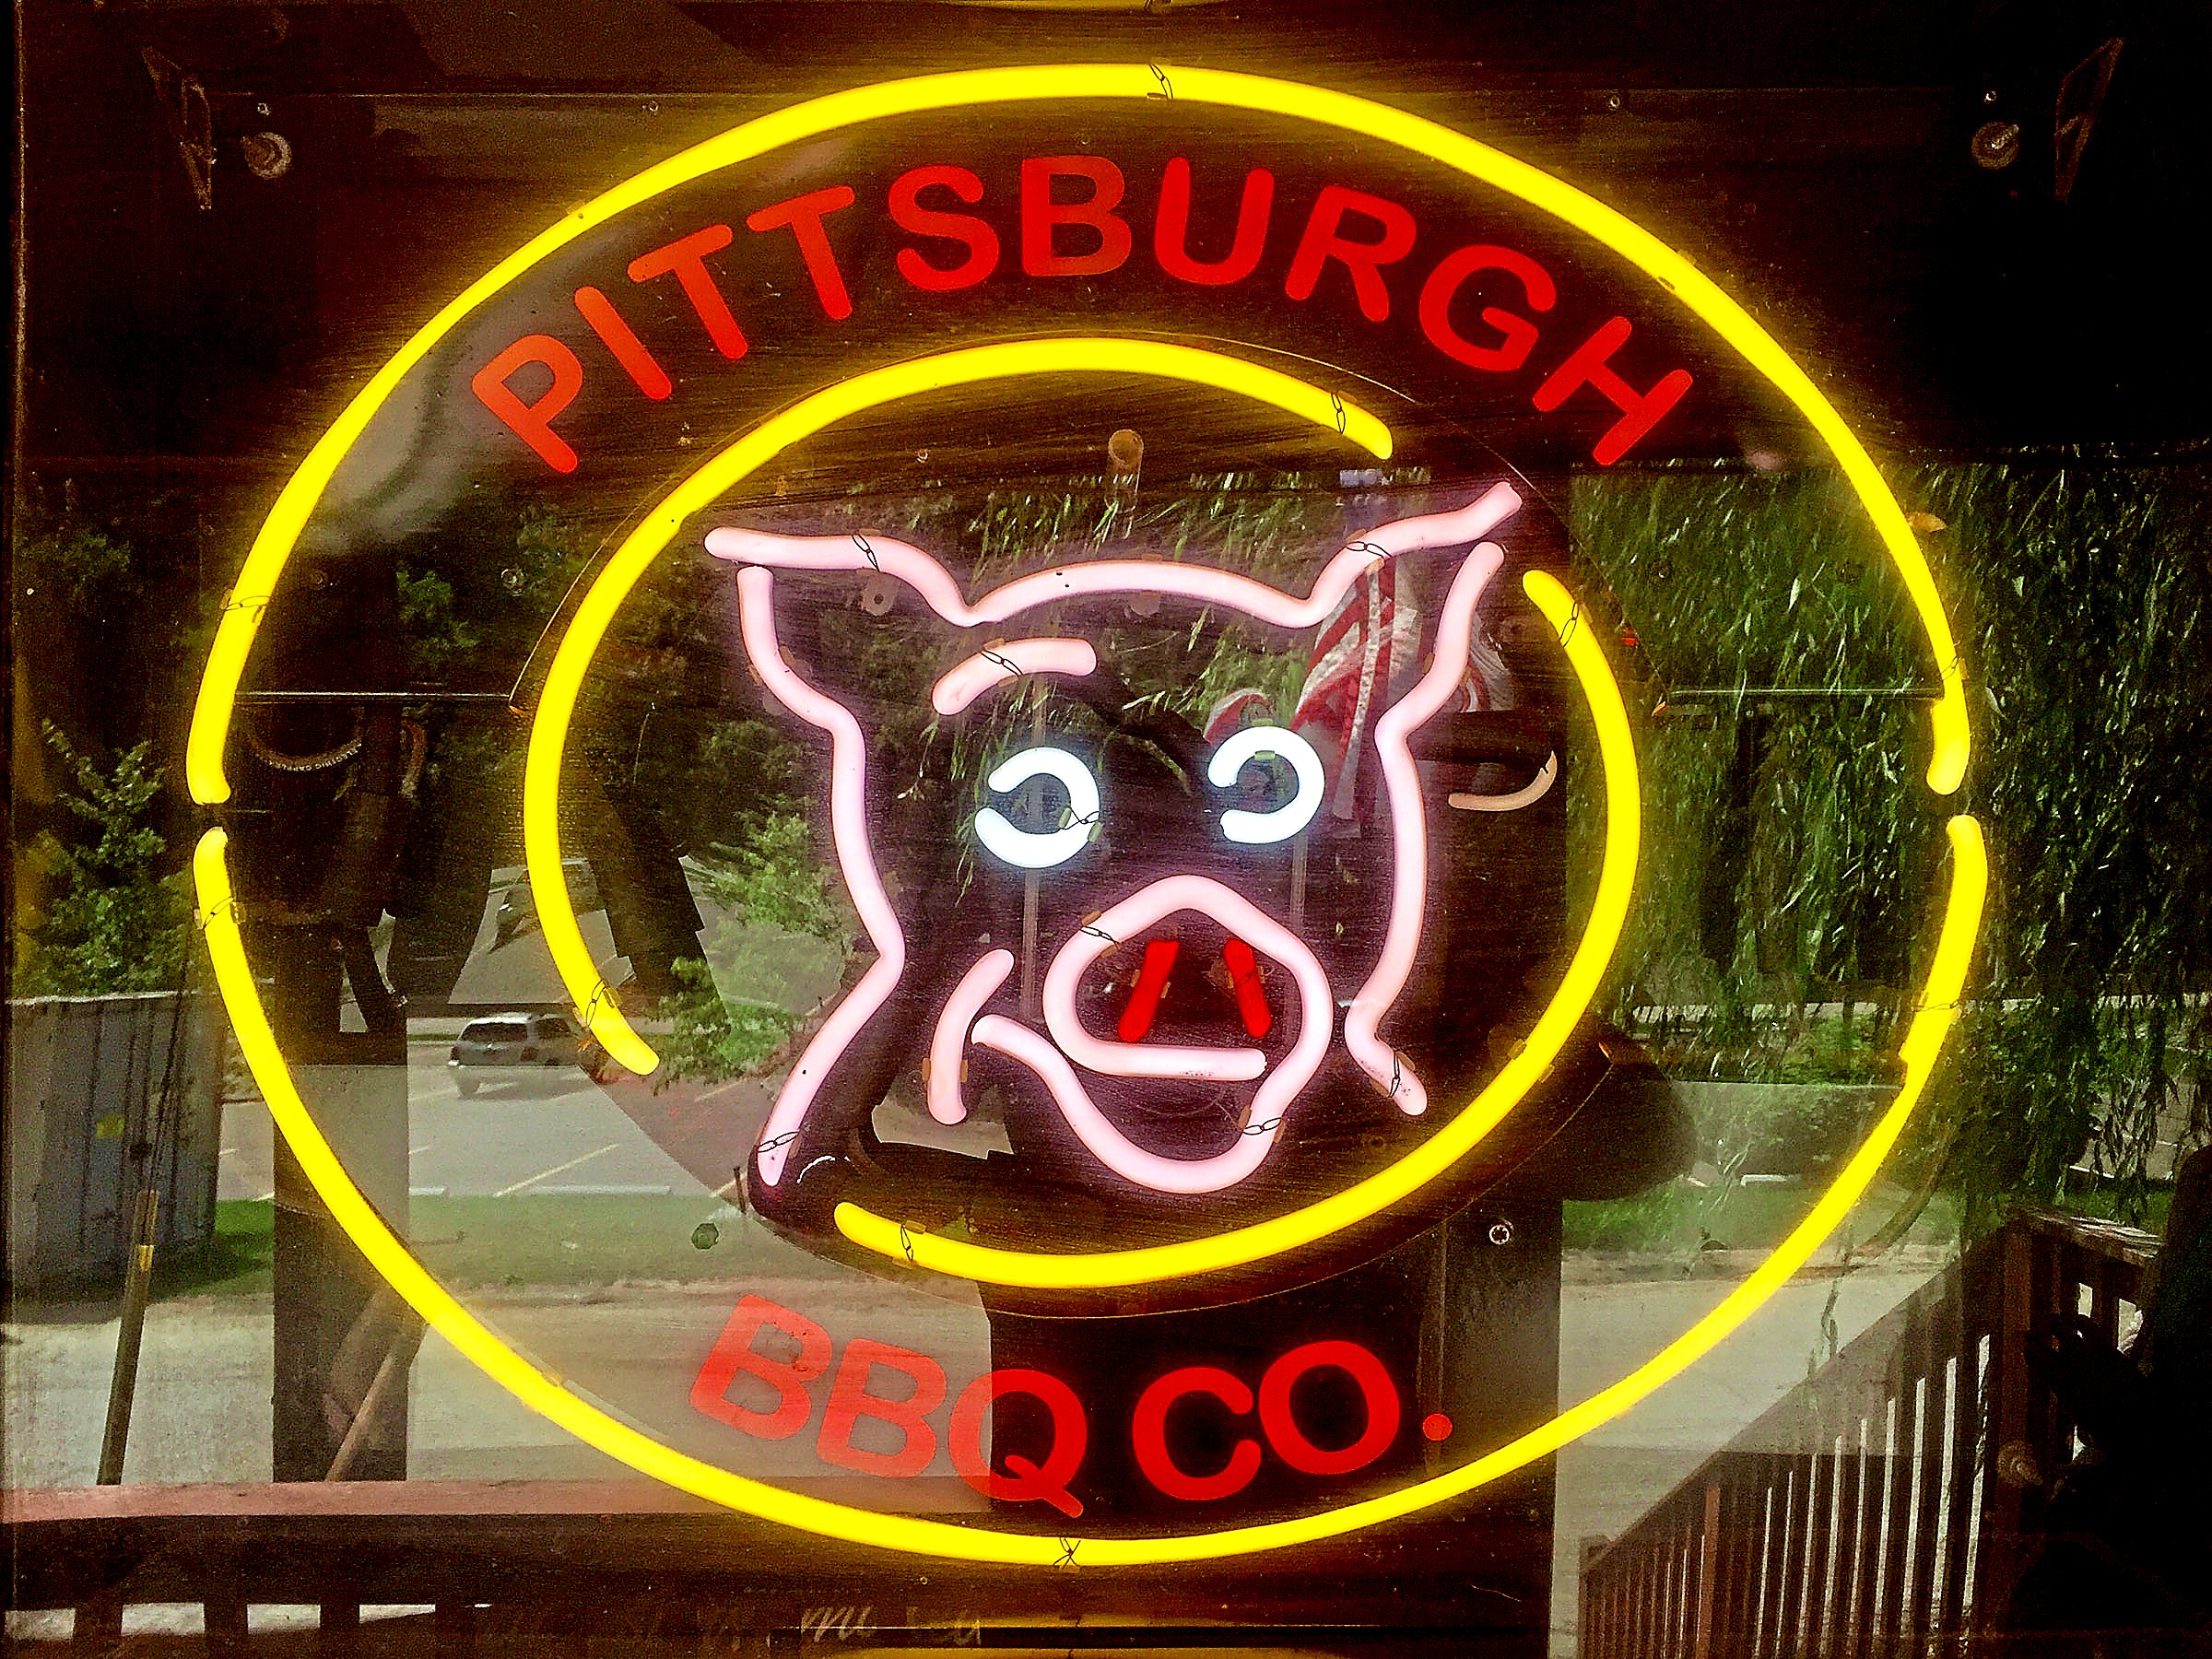 barbeque pittsburgh neon sign-1 The neon sign in the window of the Pittsburgh Barbecue Co. in Banksville.